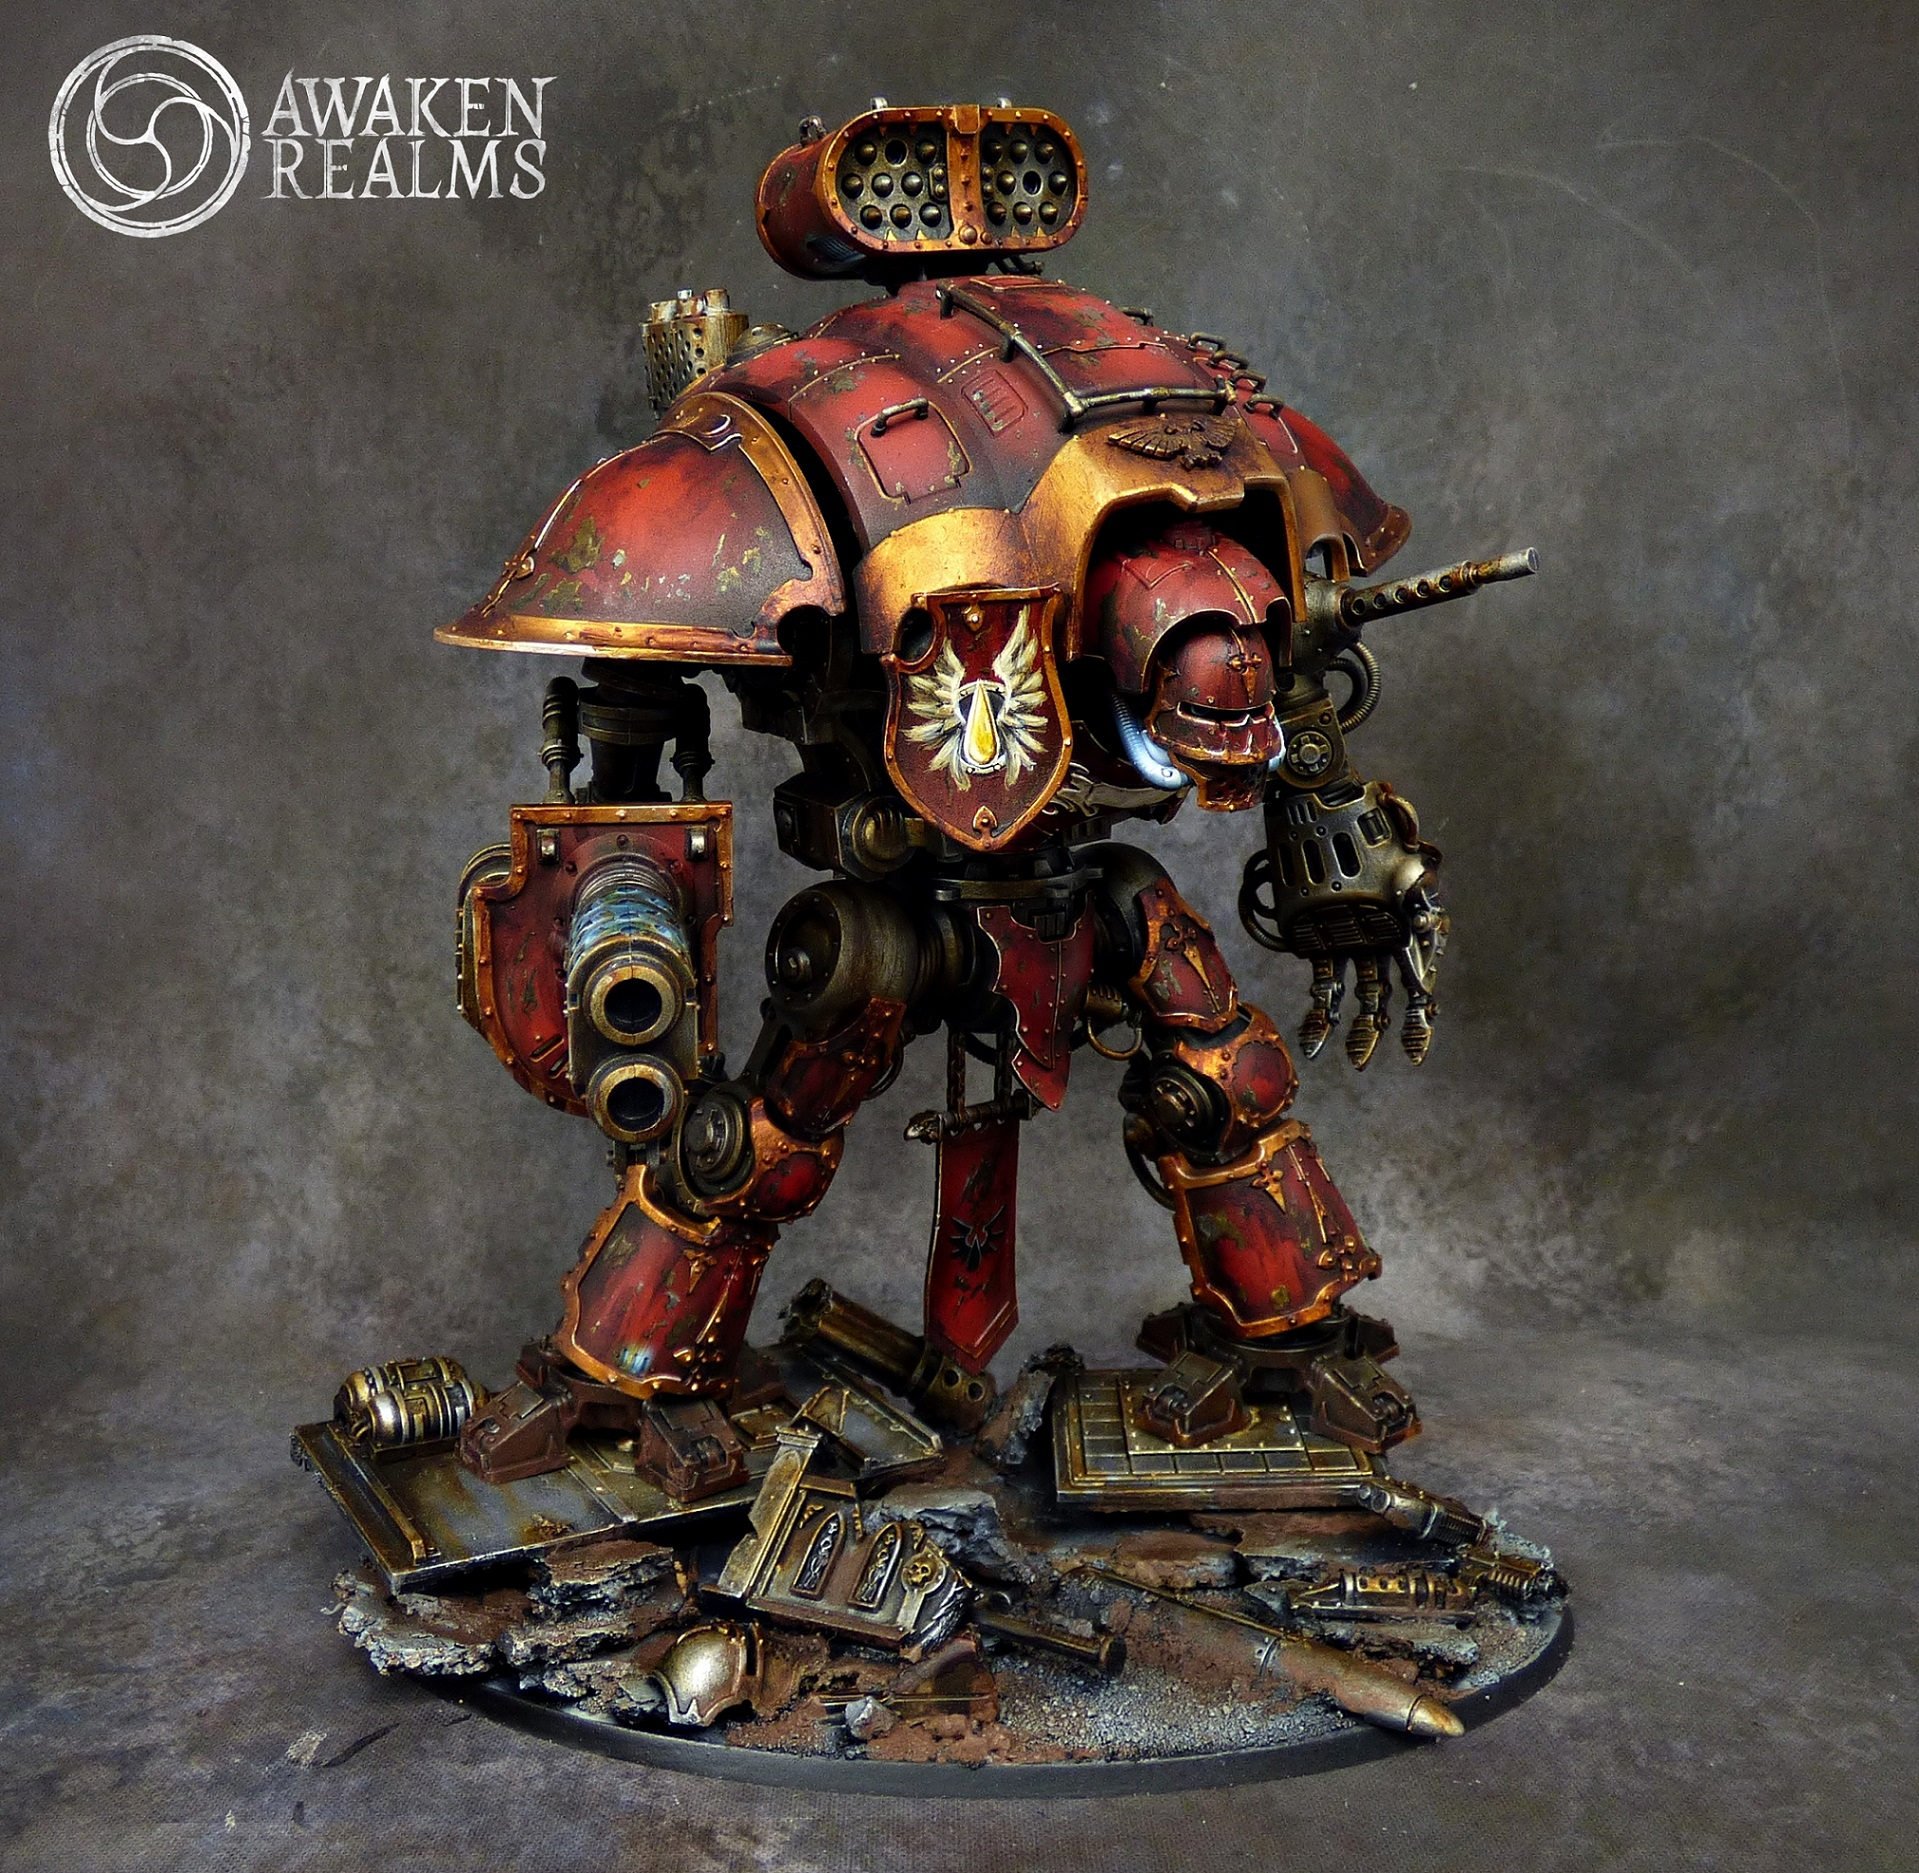 Warhammer 40k Blood Angels: Blood Angels Imperial Knight By Awaken Realms